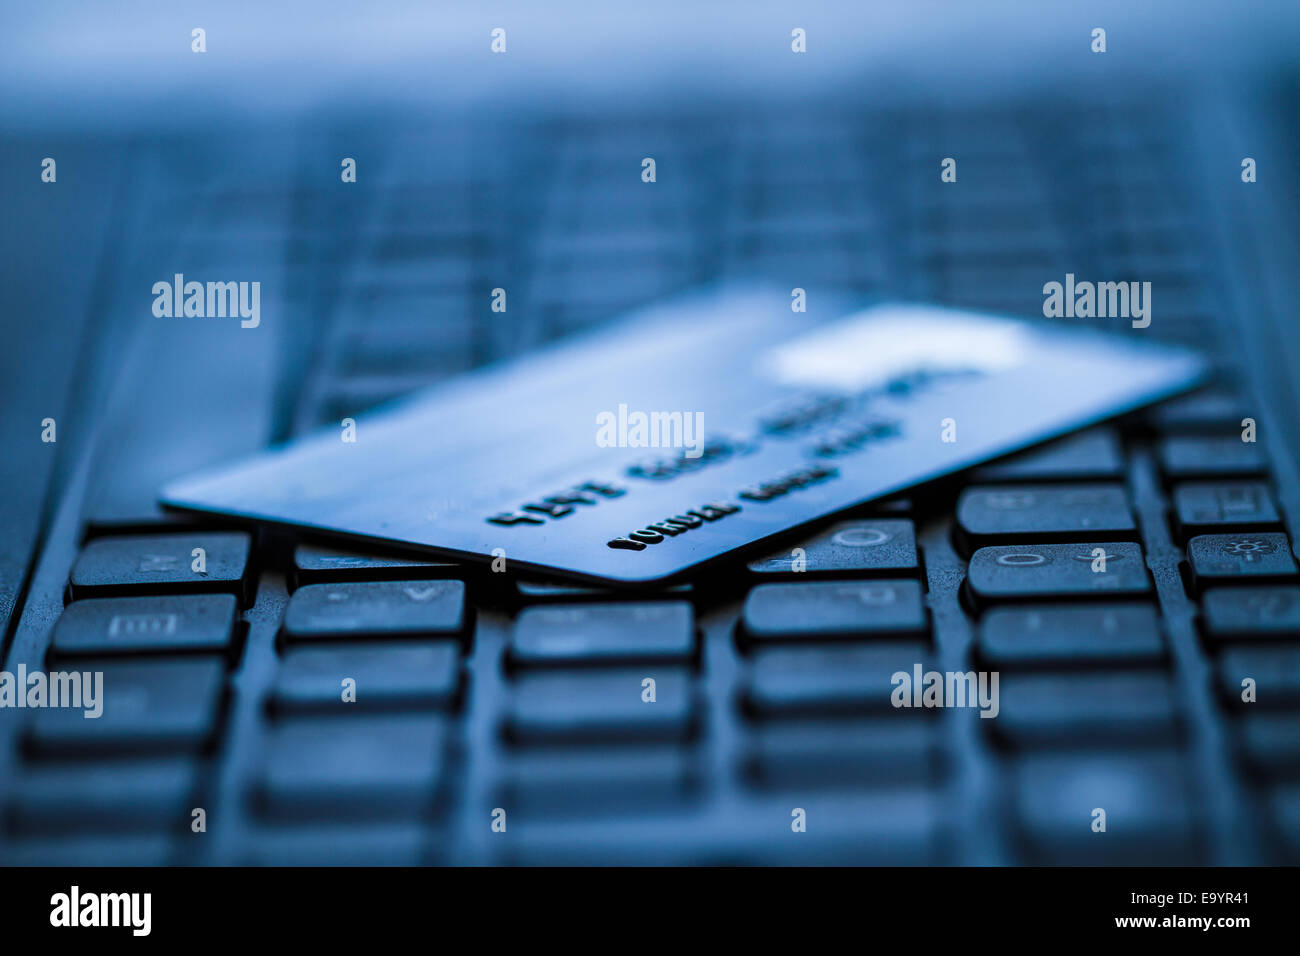 Online banking and bank transactions with credit card - Stock Image